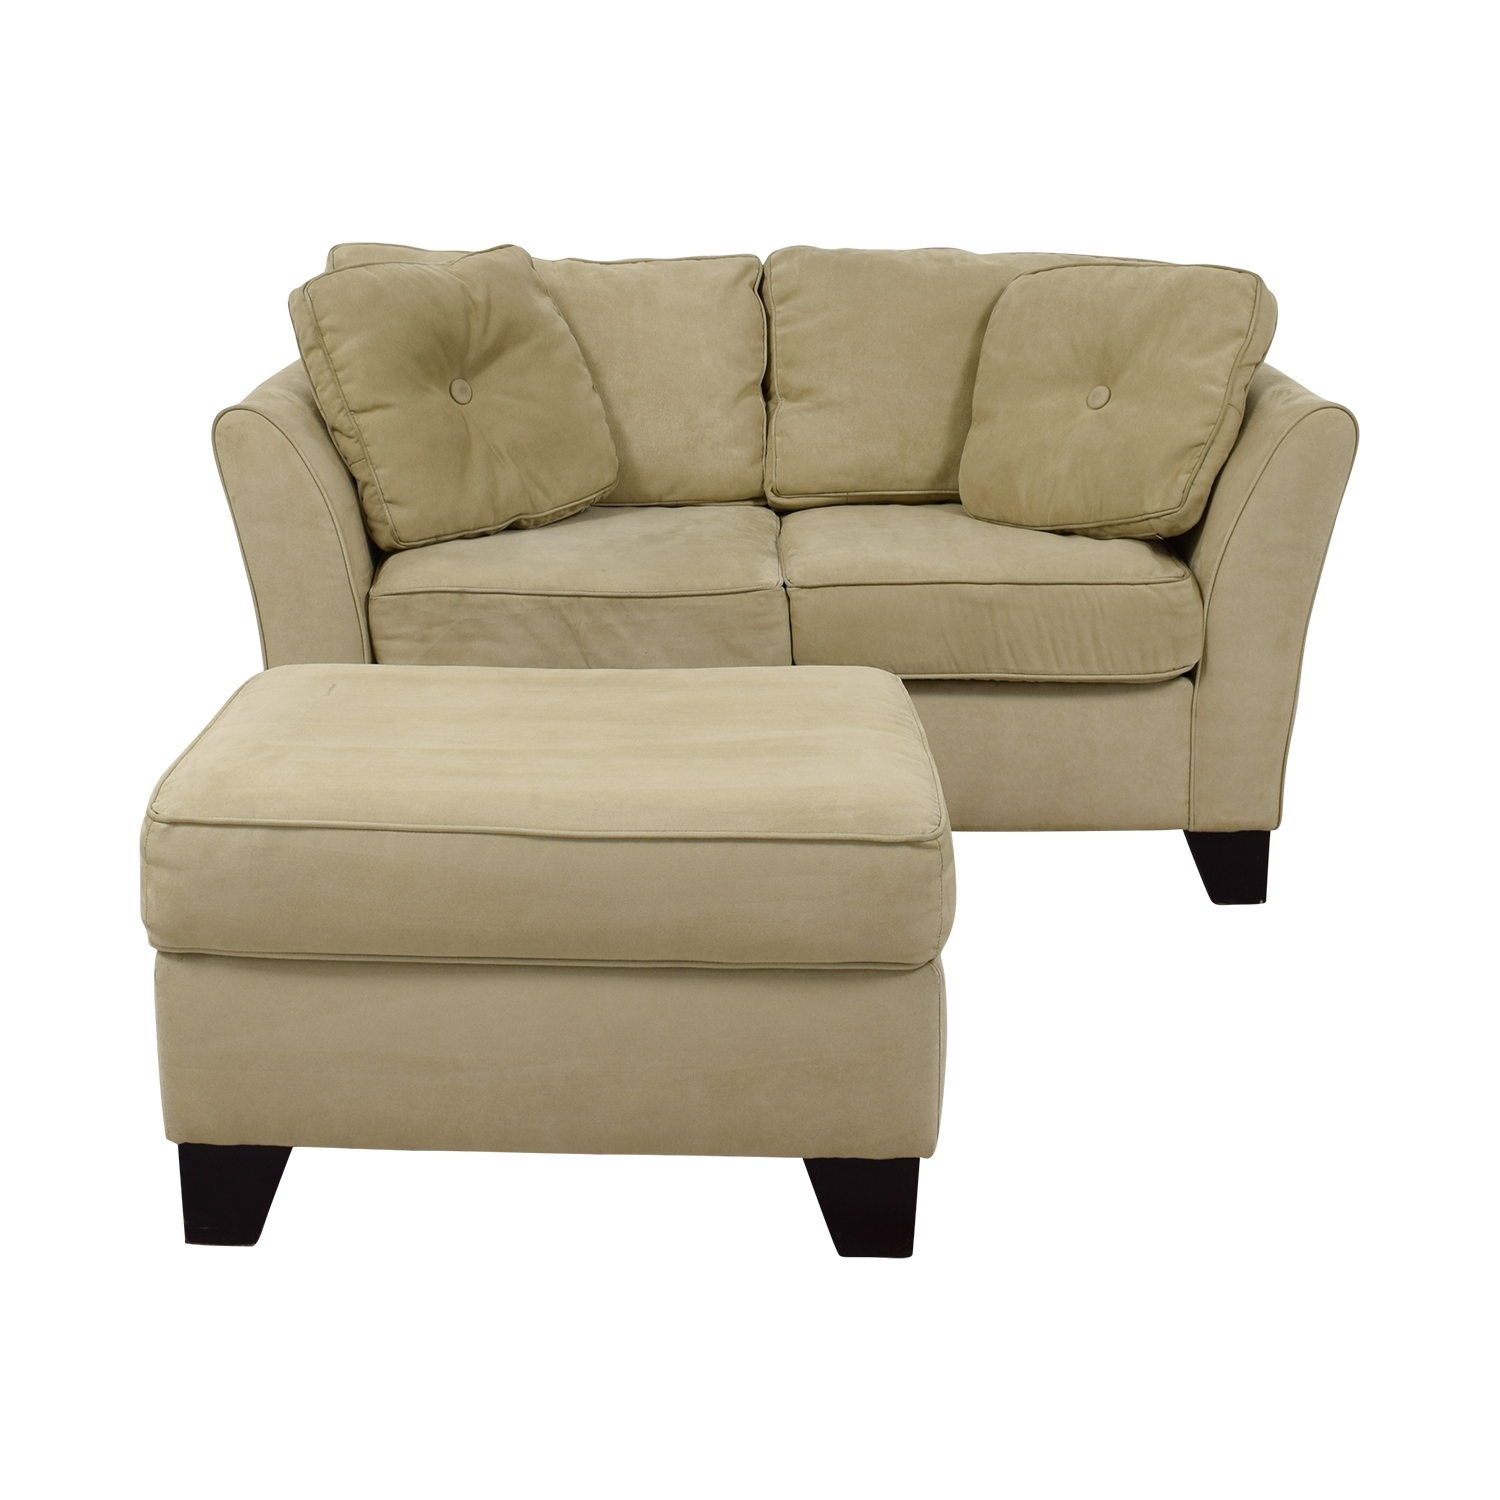 [%86% Off – Macy's Macy's Tan Loveseat With Ottoman / Sofas For Most Popular Loveseats With Ottoman|Loveseats With Ottoman With Most Up To Date 86% Off – Macy's Macy's Tan Loveseat With Ottoman / Sofas|Well Known Loveseats With Ottoman With 86% Off – Macy's Macy's Tan Loveseat With Ottoman / Sofas|Popular 86% Off – Macy's Macy's Tan Loveseat With Ottoman / Sofas With Loveseats With Ottoman%] (View 2 of 20)